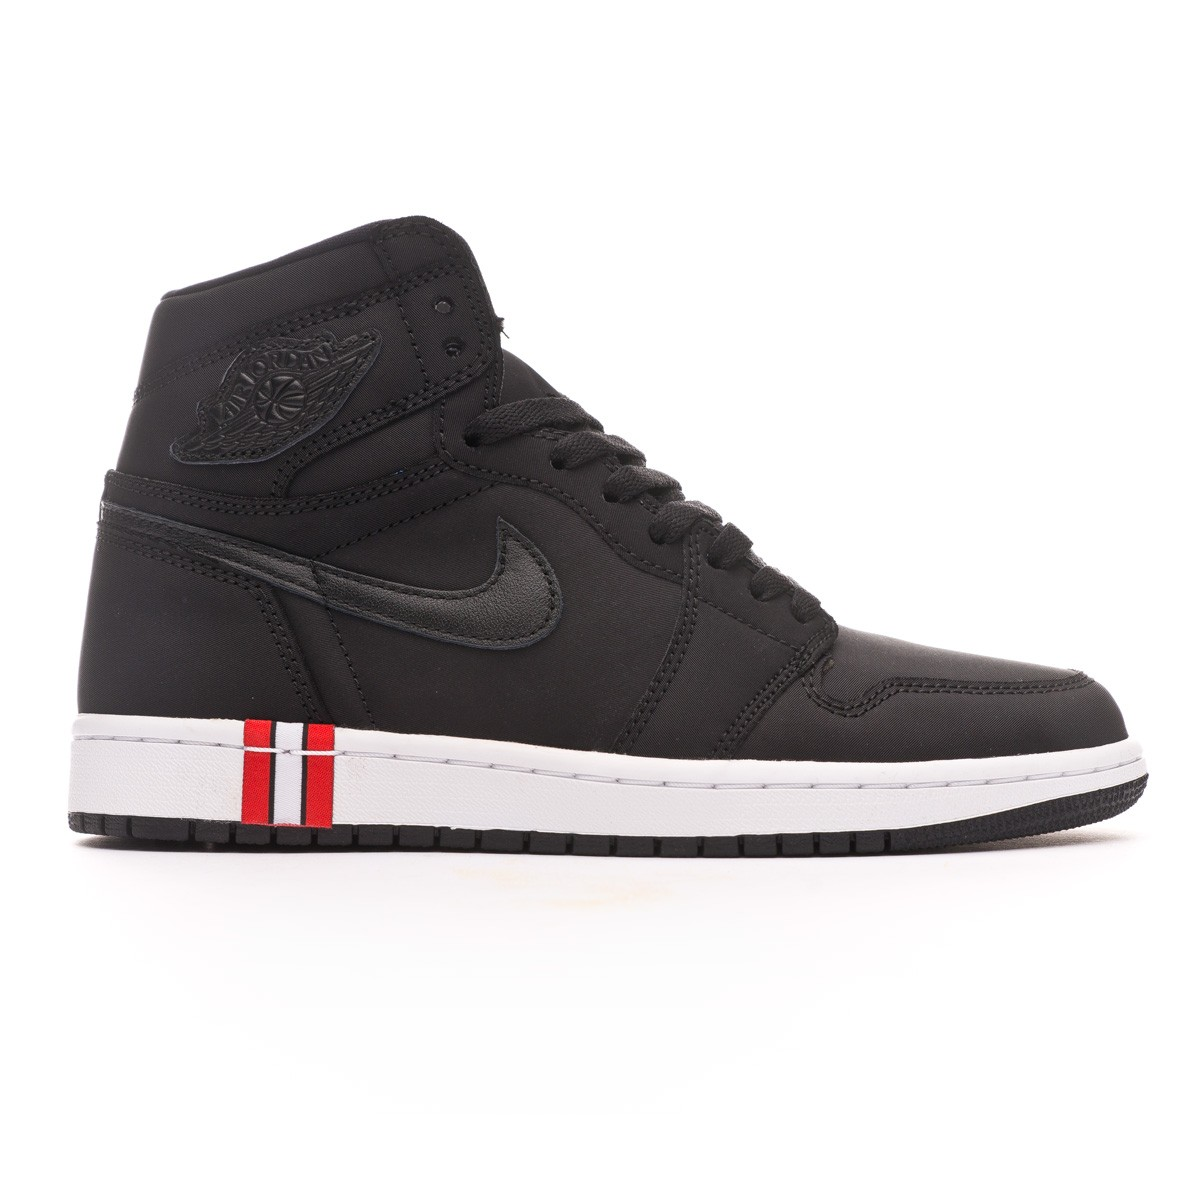 31f43995647fc Trainers Nike Air Jordan 1 Retro Hi OG Jordan x PSG Black-Challenge  red-White - Football store Fútbol Emotion